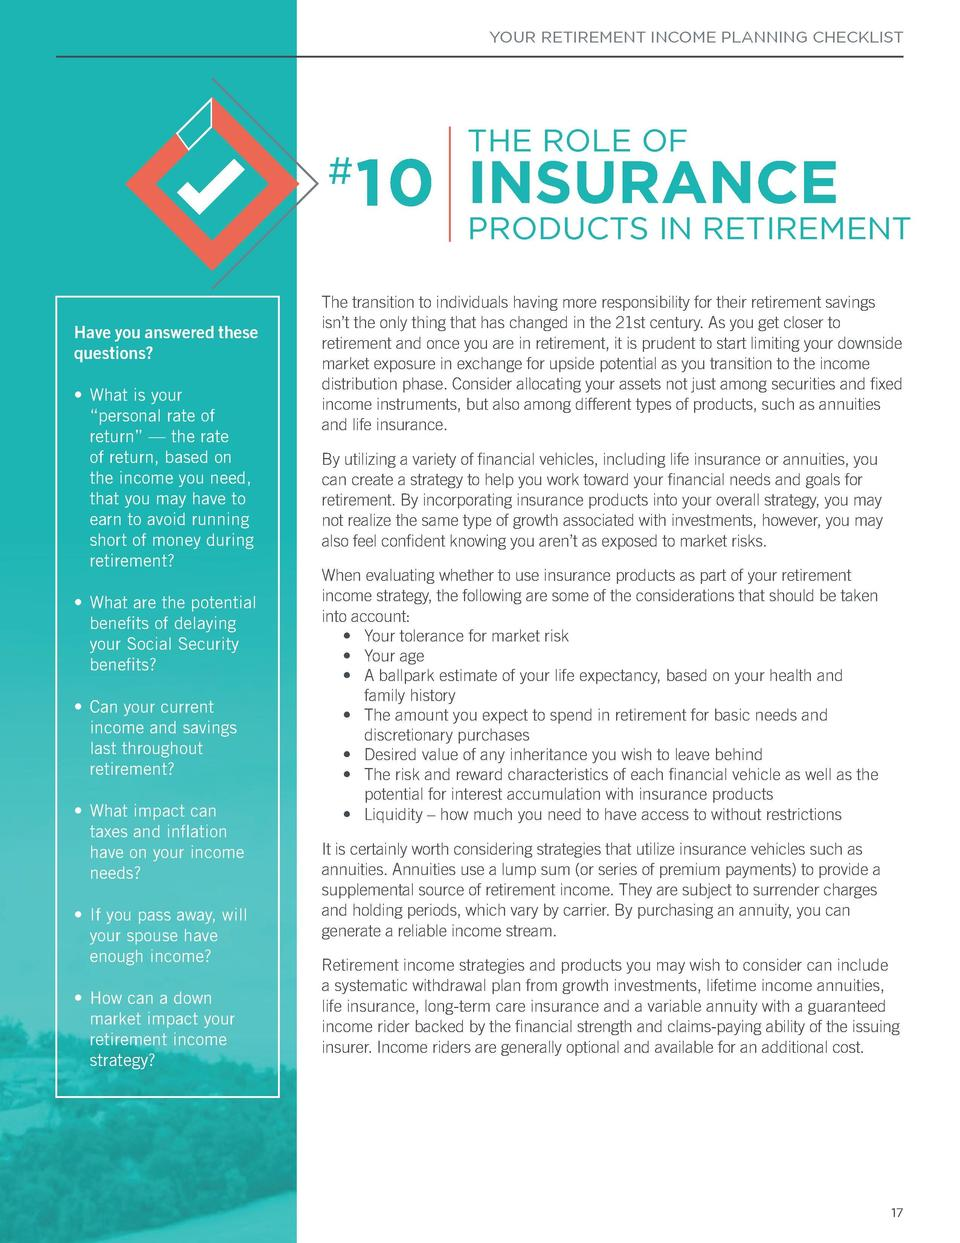 YOUR RETIREMENT INCOME PLANNING CHECKLIST     YOUR RETIREMENT INCOME PLANNING CHECKLIST  9 STRATEGIES DISTRIBUTION  Saving...